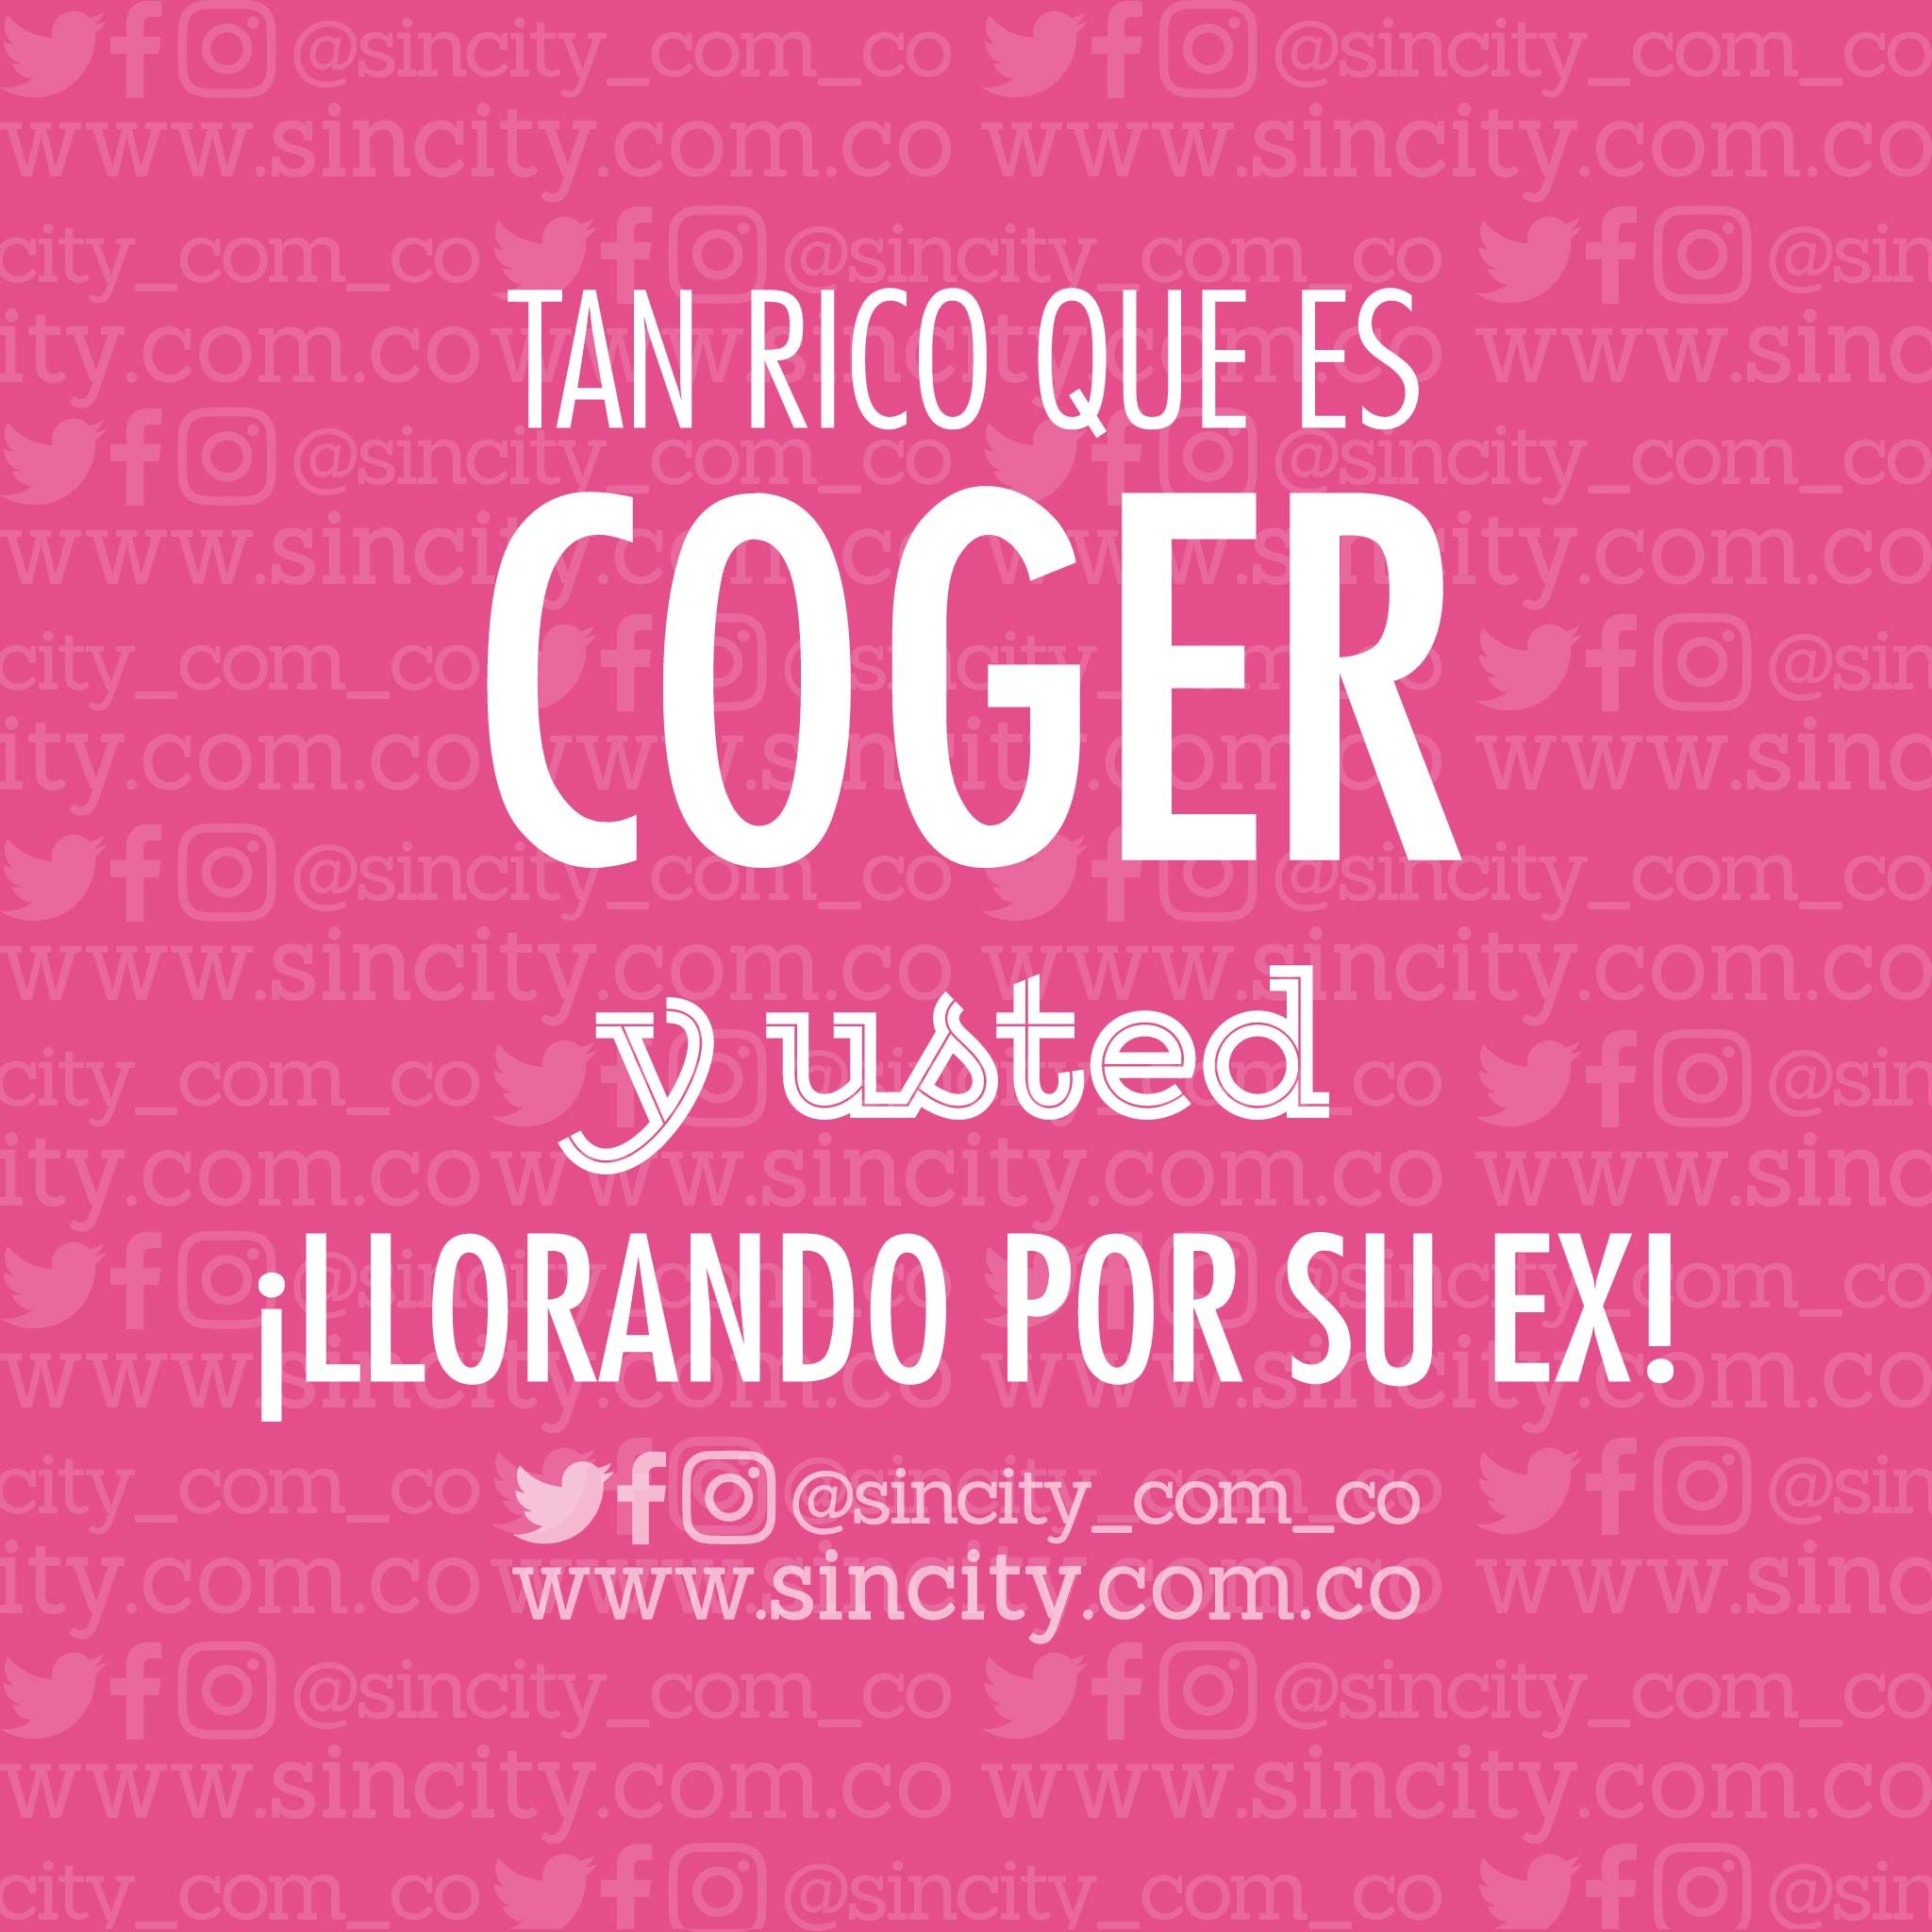 frases frasessincity sincitycolombia sincity colombia amor